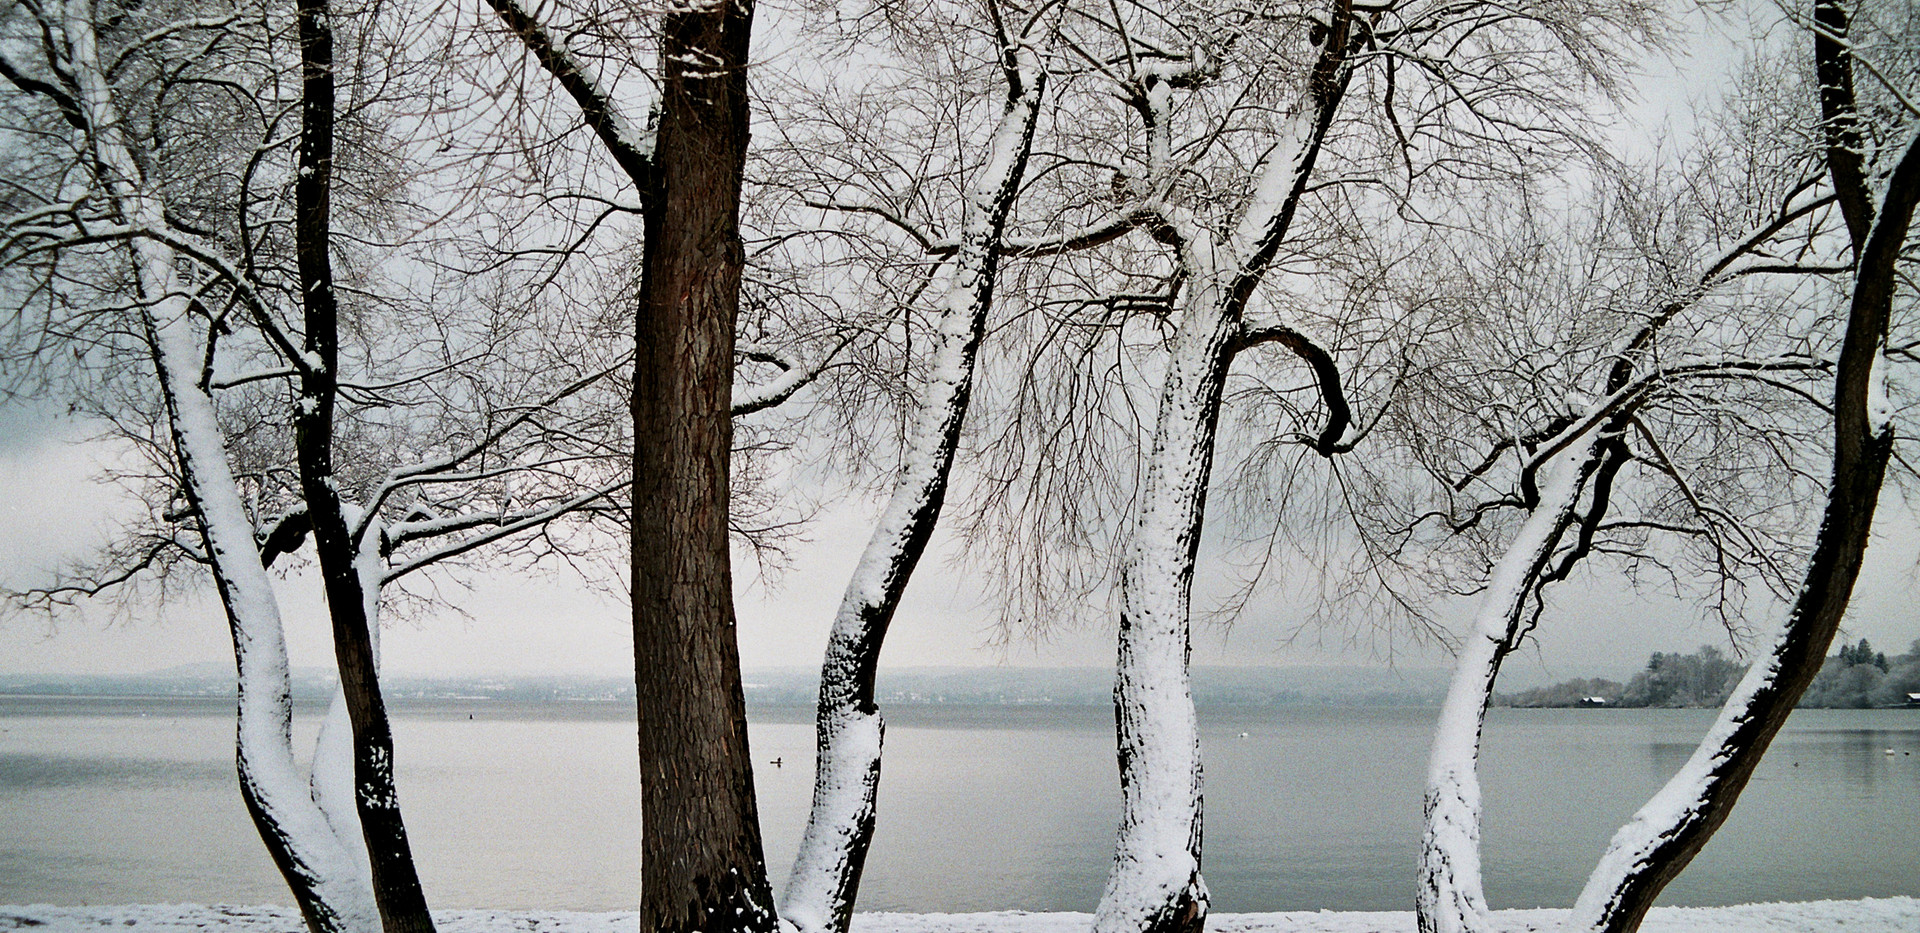 Ammersee, Germany, February 2018